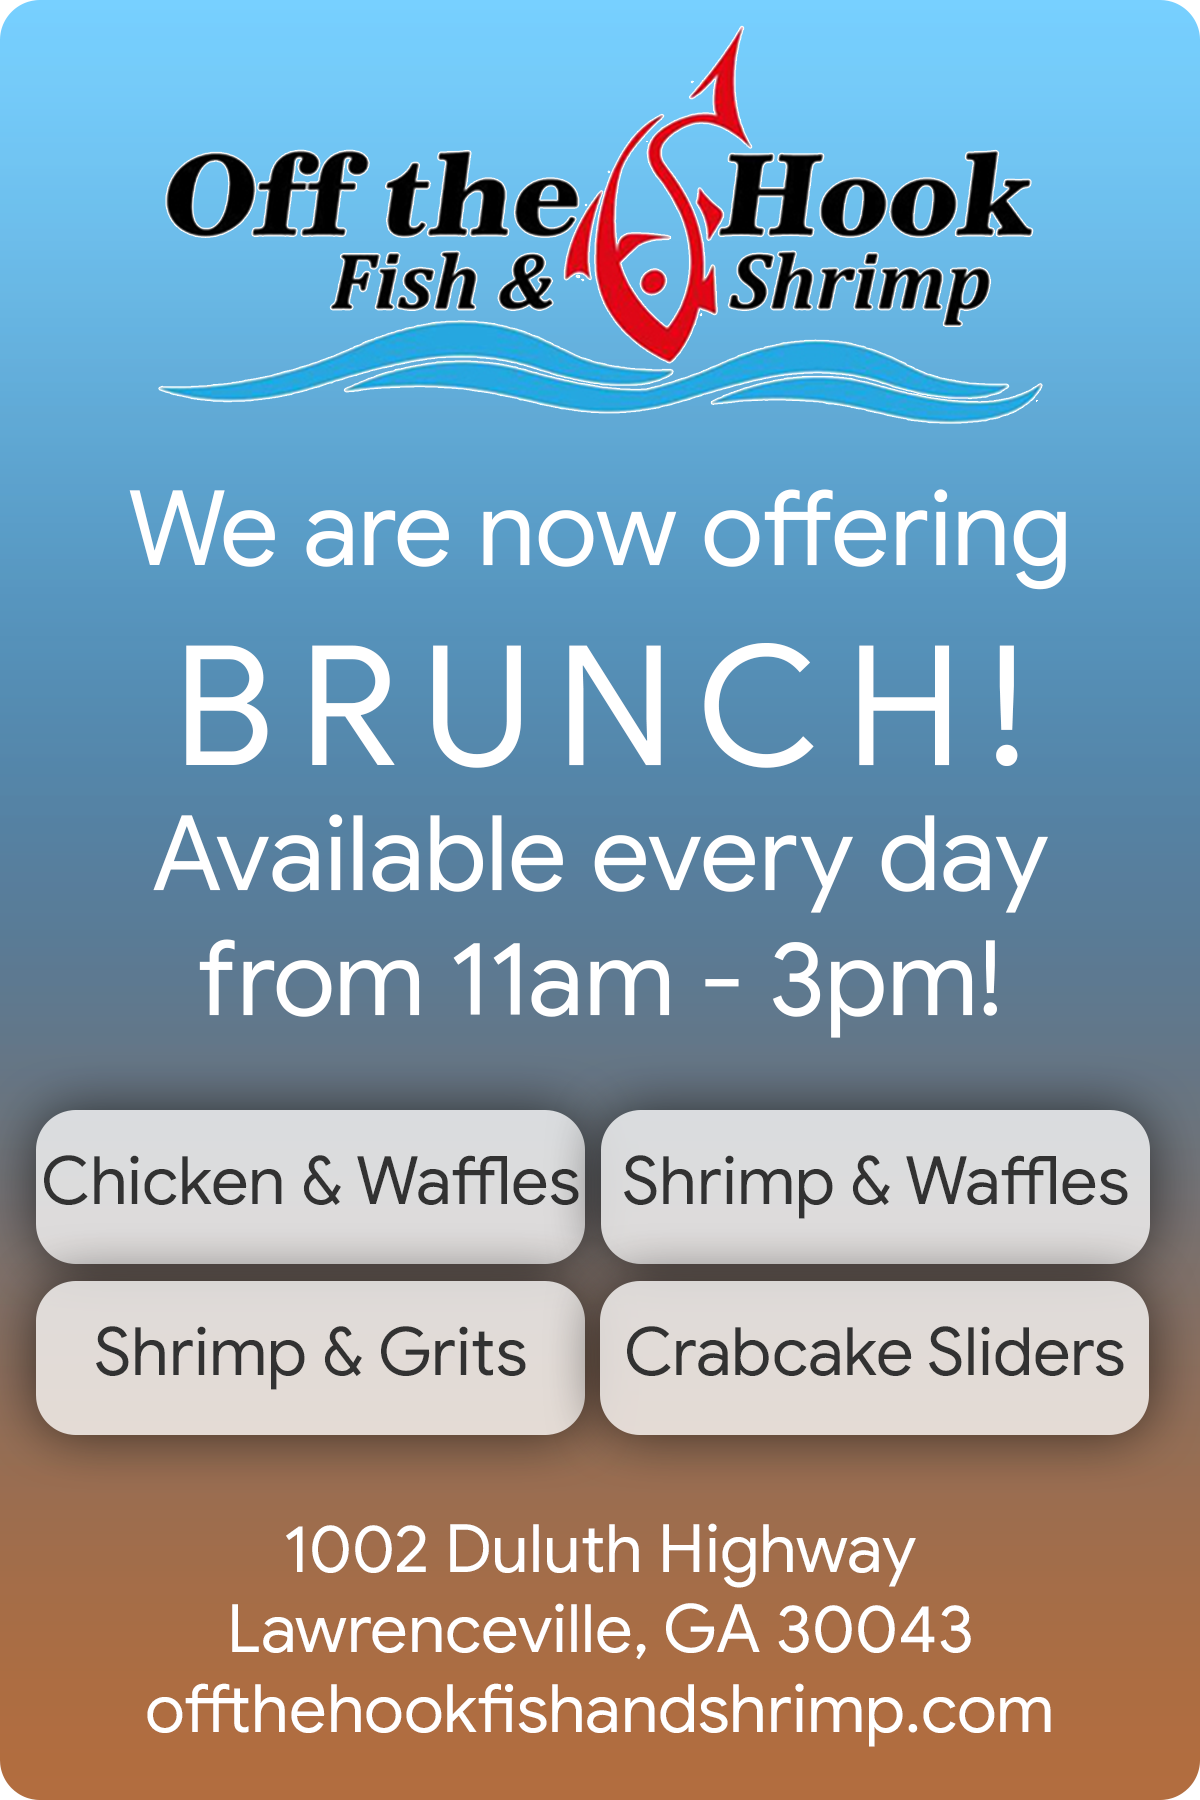 Off the Hook Fish & Shrimp. We are now offering BRUNCH! Available every day from 11am - 3pm! Chicken & Waffles, Shrimp & Waffles, Shrimp & Grits, Crabcake Sliders. 1002 Duluth Highway, Lawrenceville, GA 30043